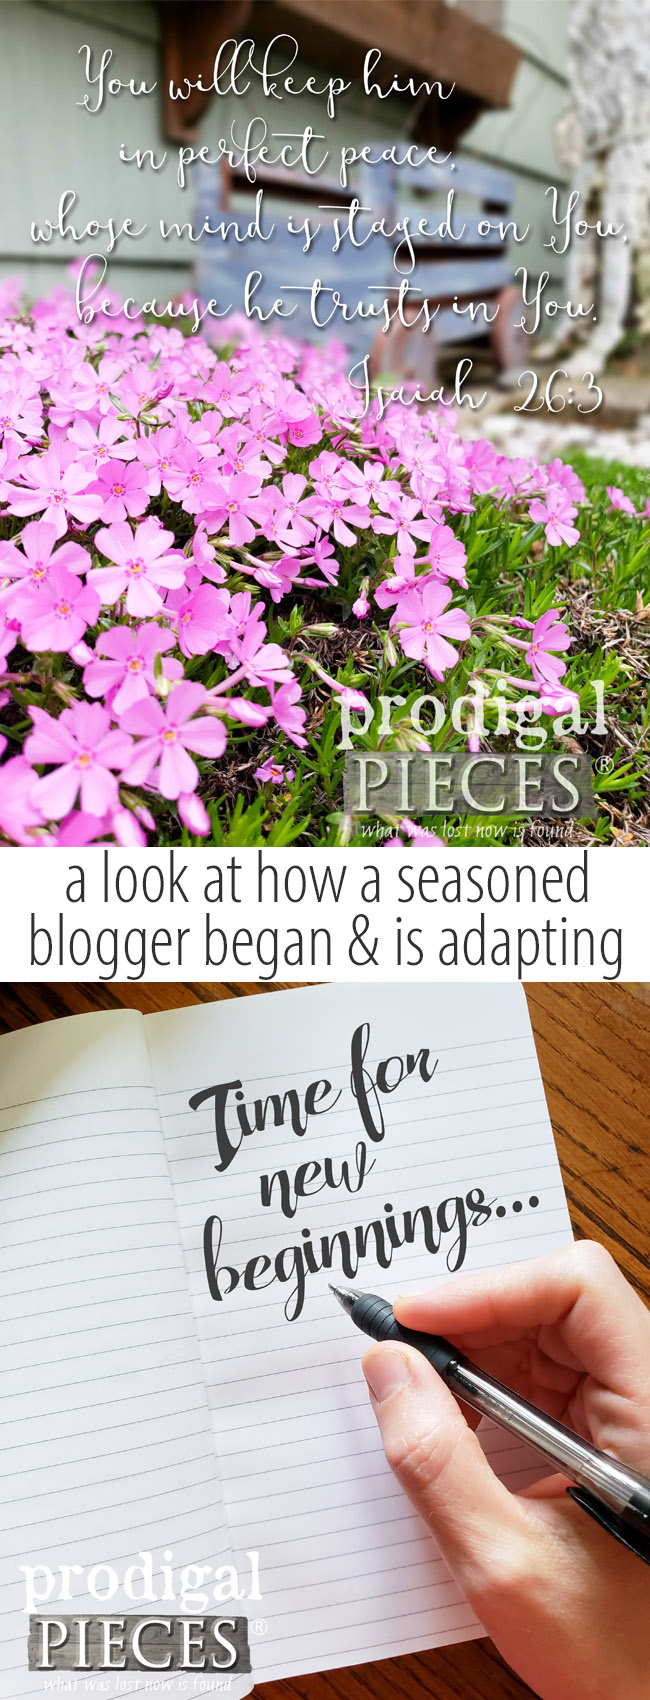 Take a peek at how a seasoned blogger got started and is adapting to new beginnings by Larissa of Prodigal Pieces | prodigalpieces.com